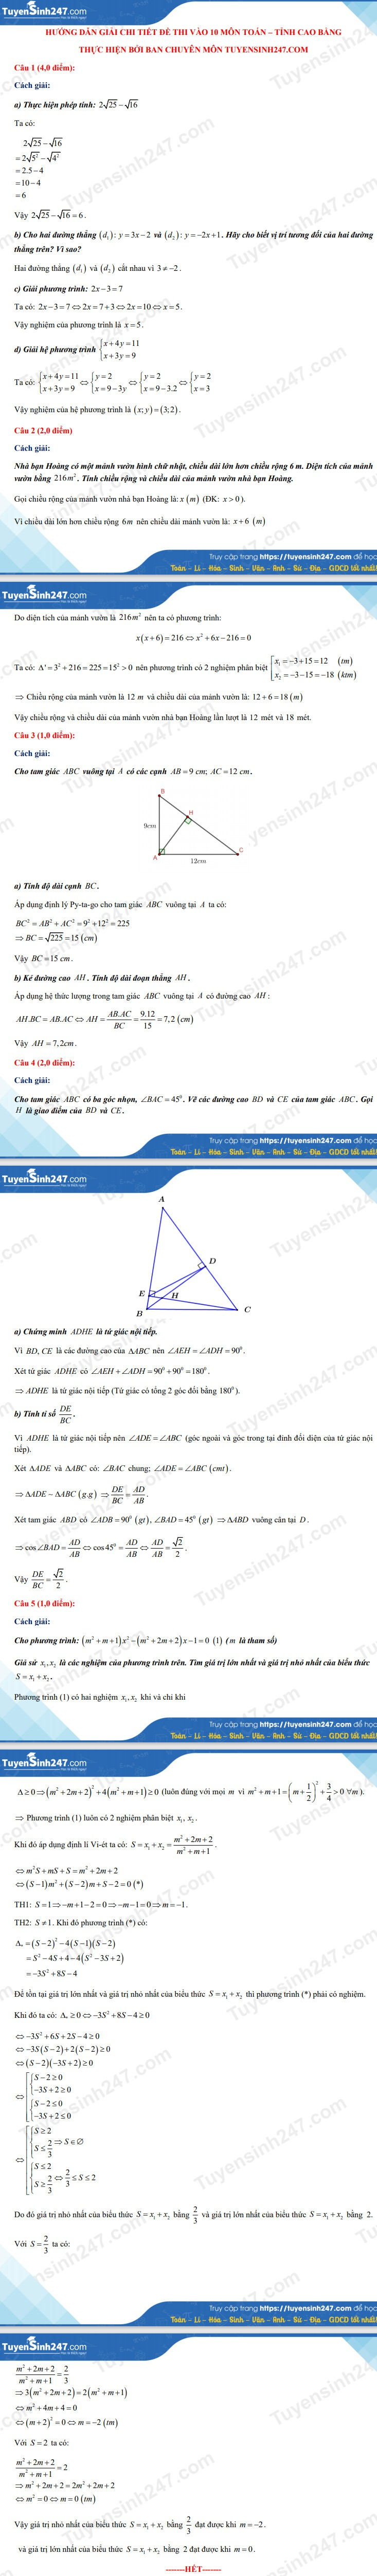 Answers to the 10th grade math exam in Cao Bang province in 2021 3